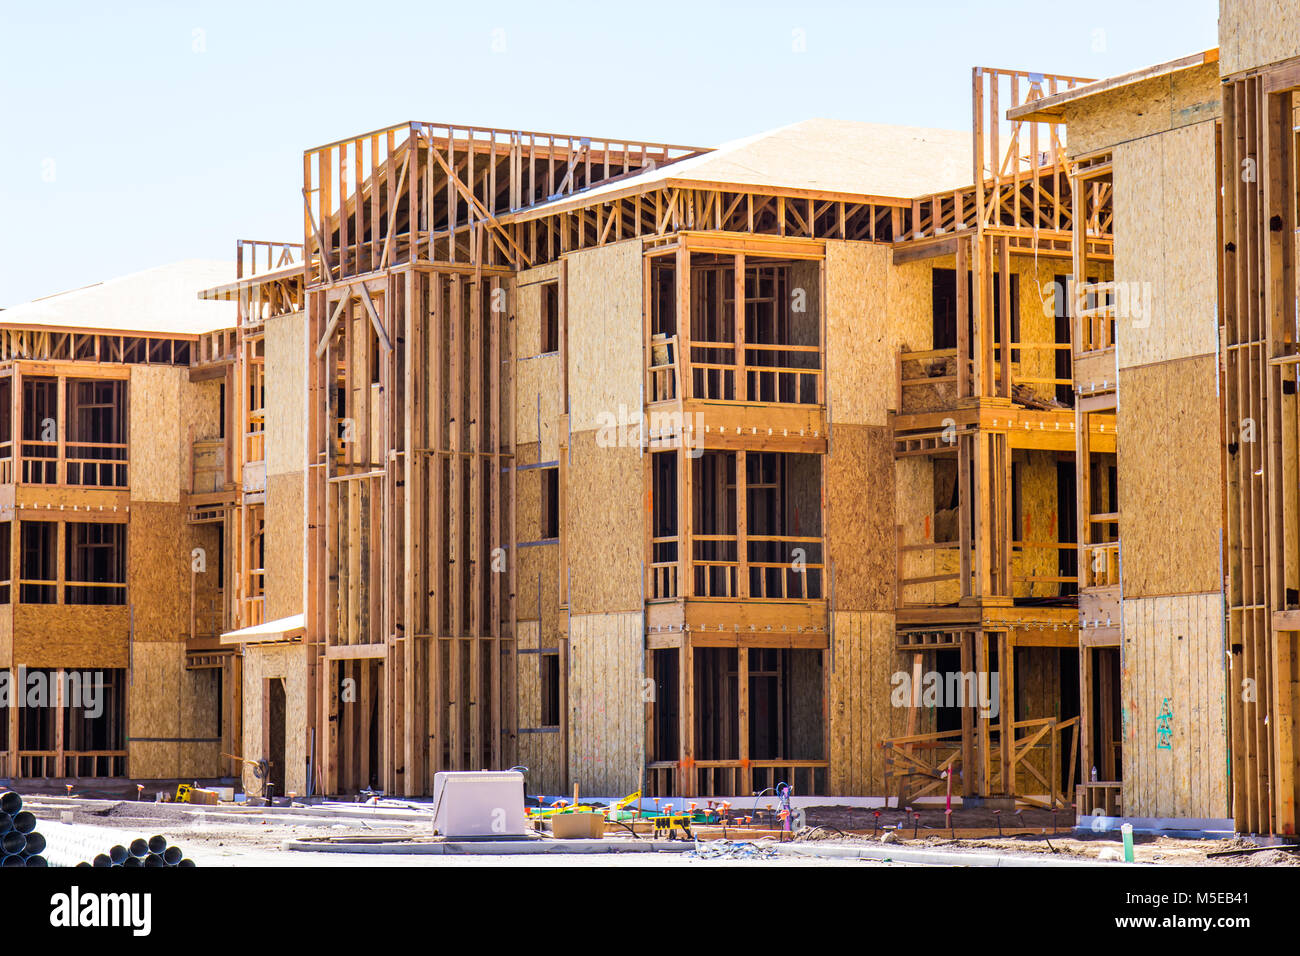 New Three Story Apartment Building Under Construction - Stock Image